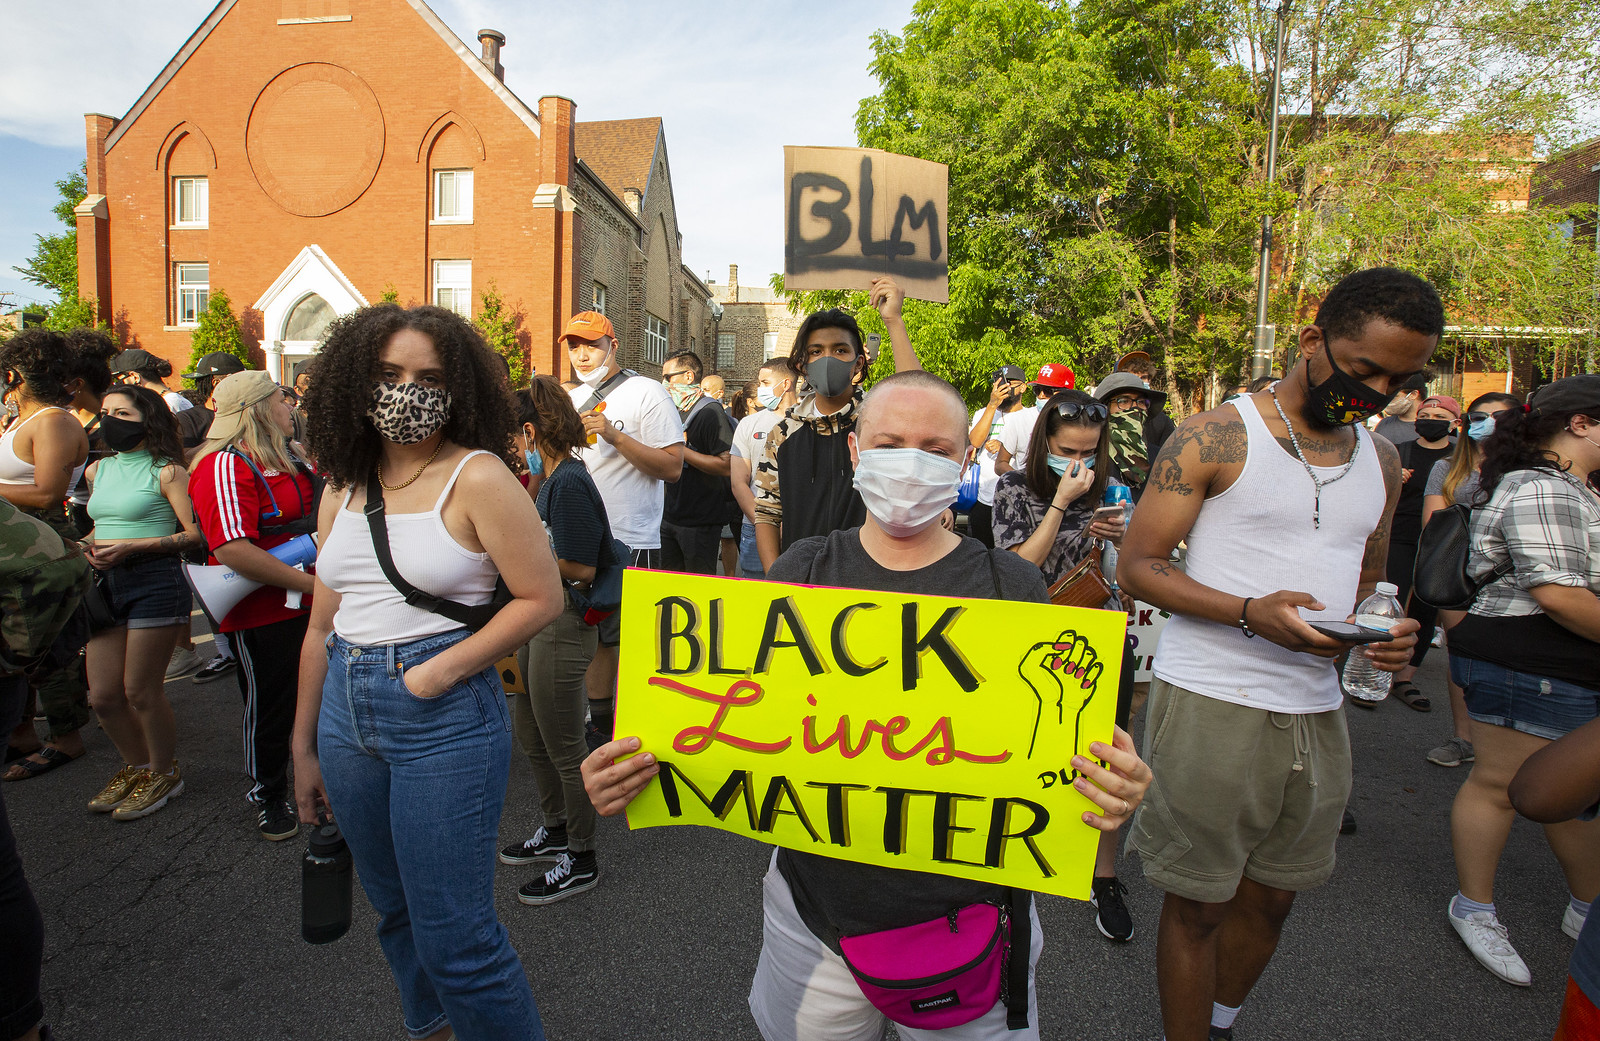 """A masked person holds a """"Black Lives Matter"""" sign in a crowd."""